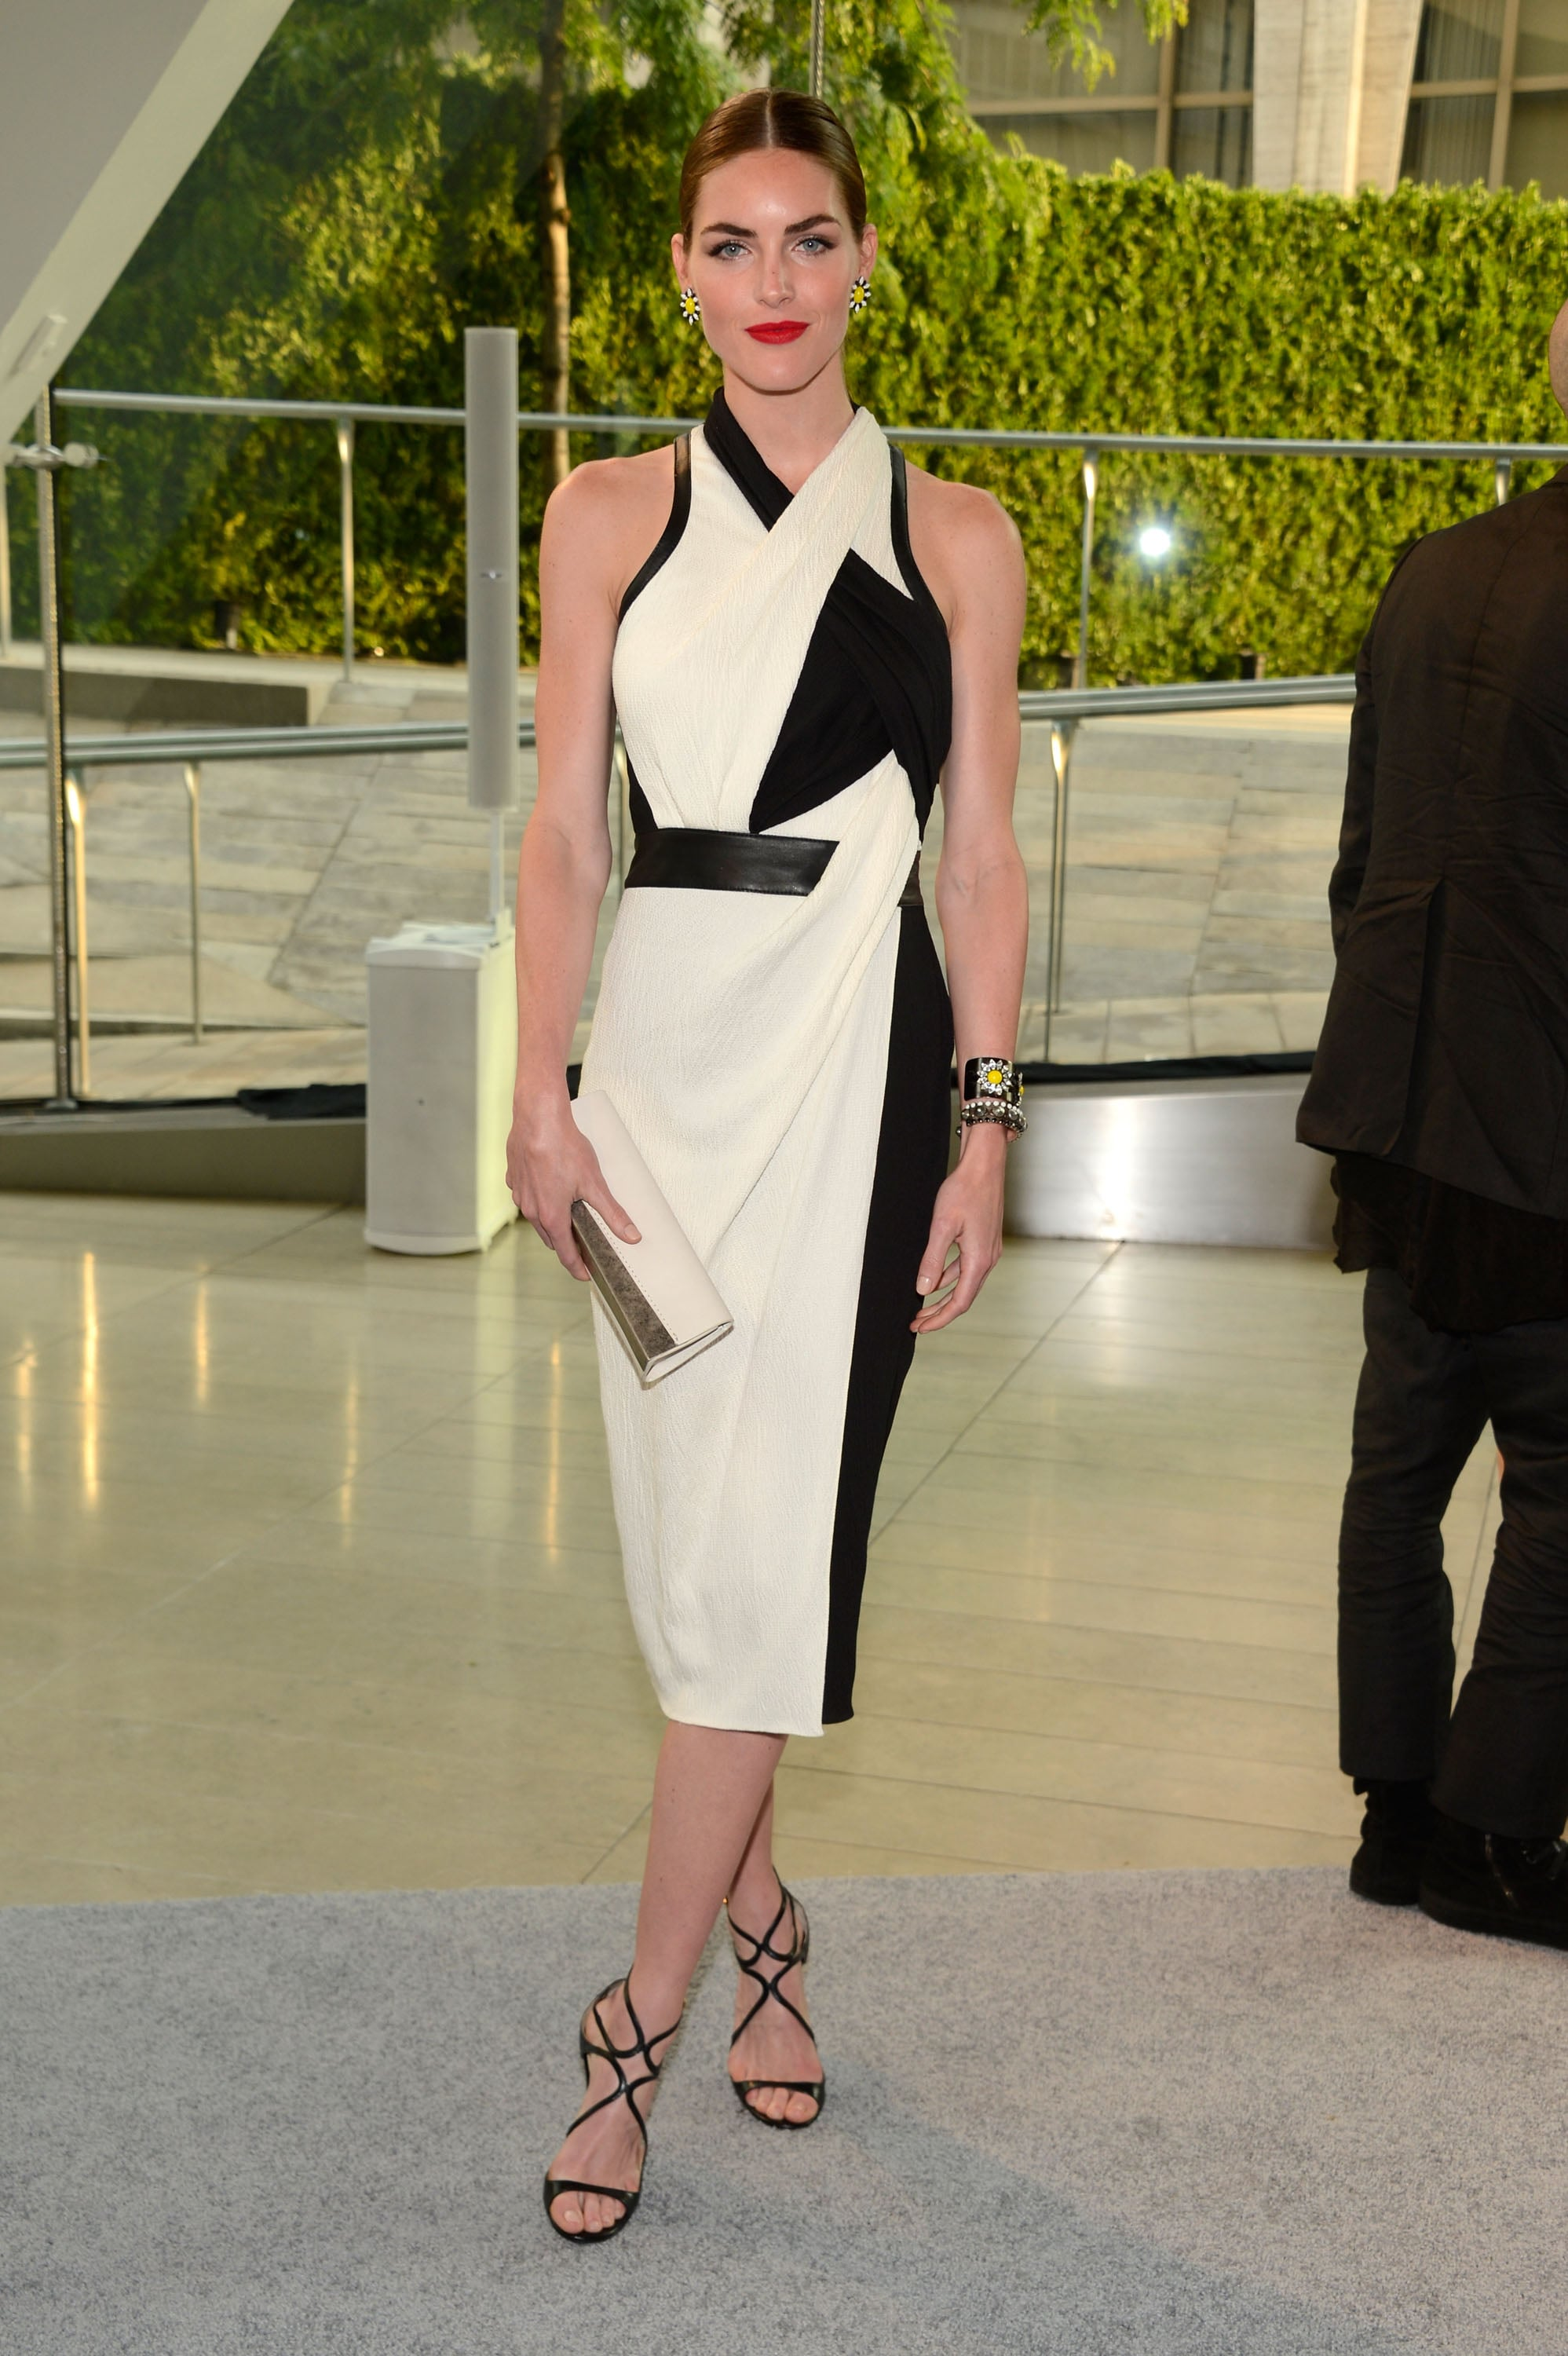 Hilary Rhoda, in Helmut Lang, at the 2013 CFDA Awards.